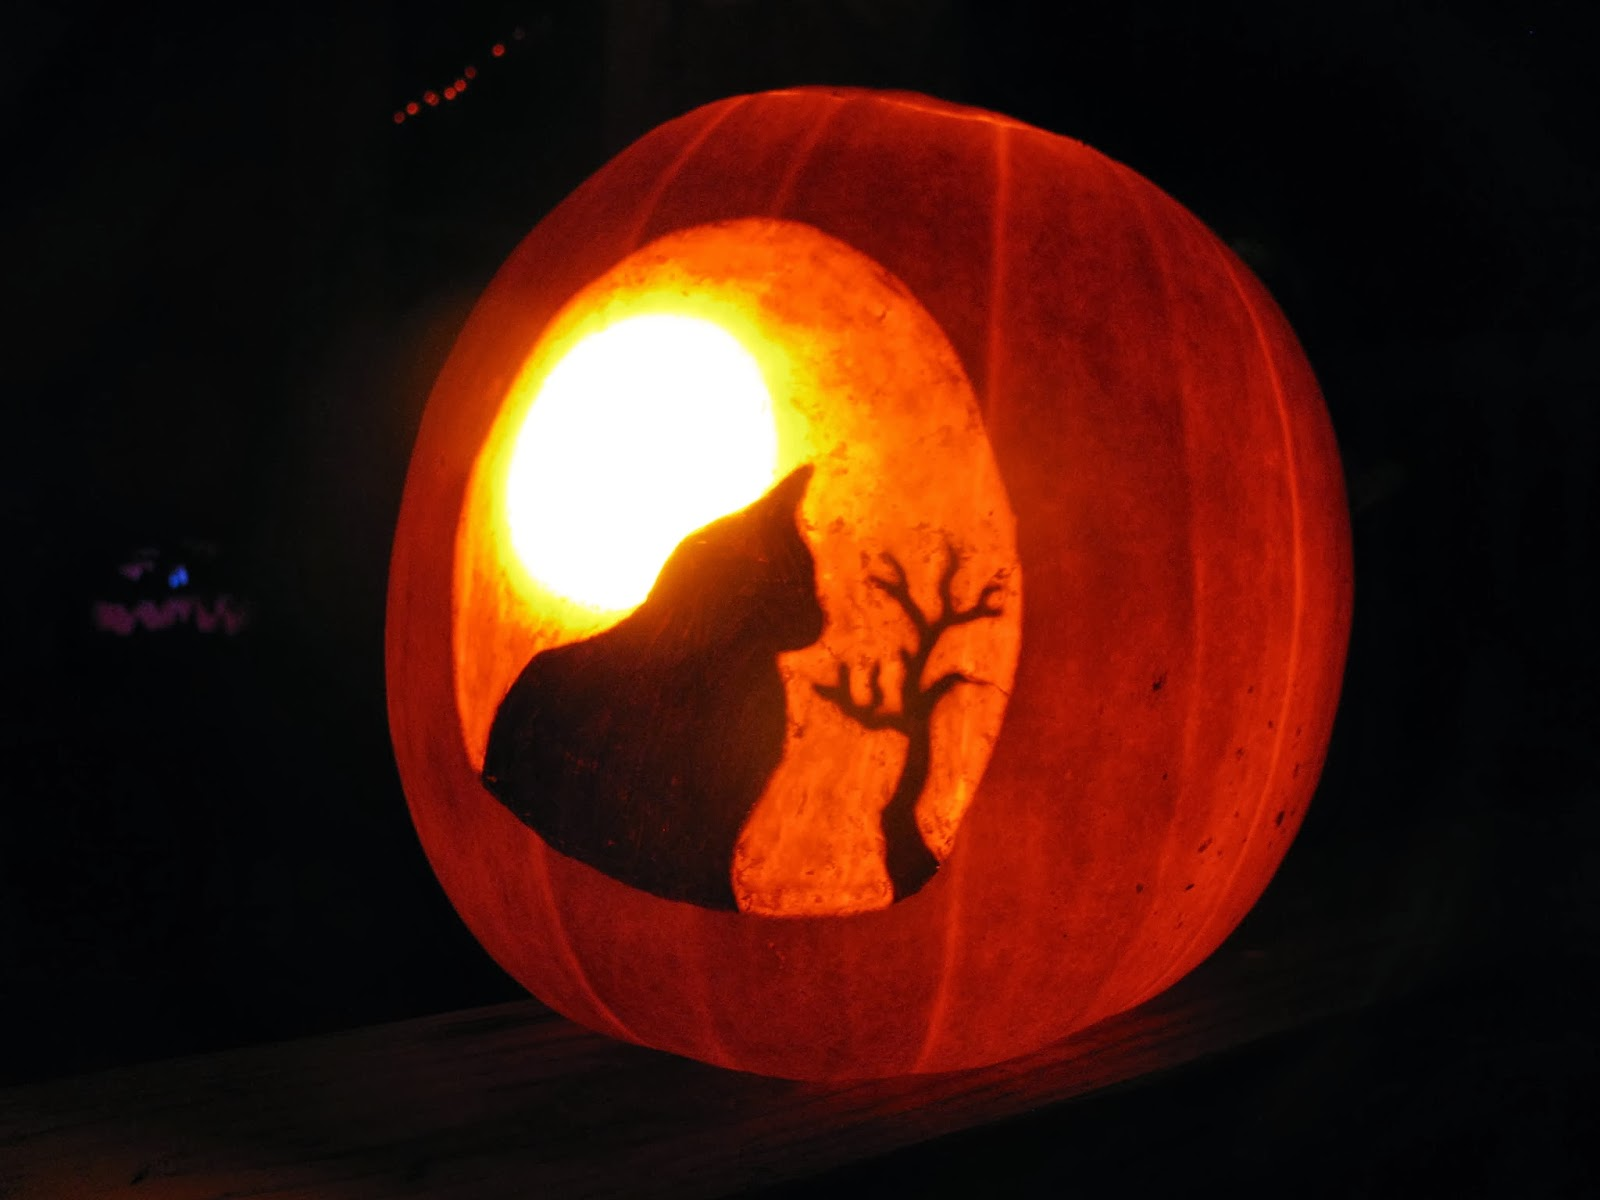 bore pumpkin carving ideas for halloween 2018 some of the best